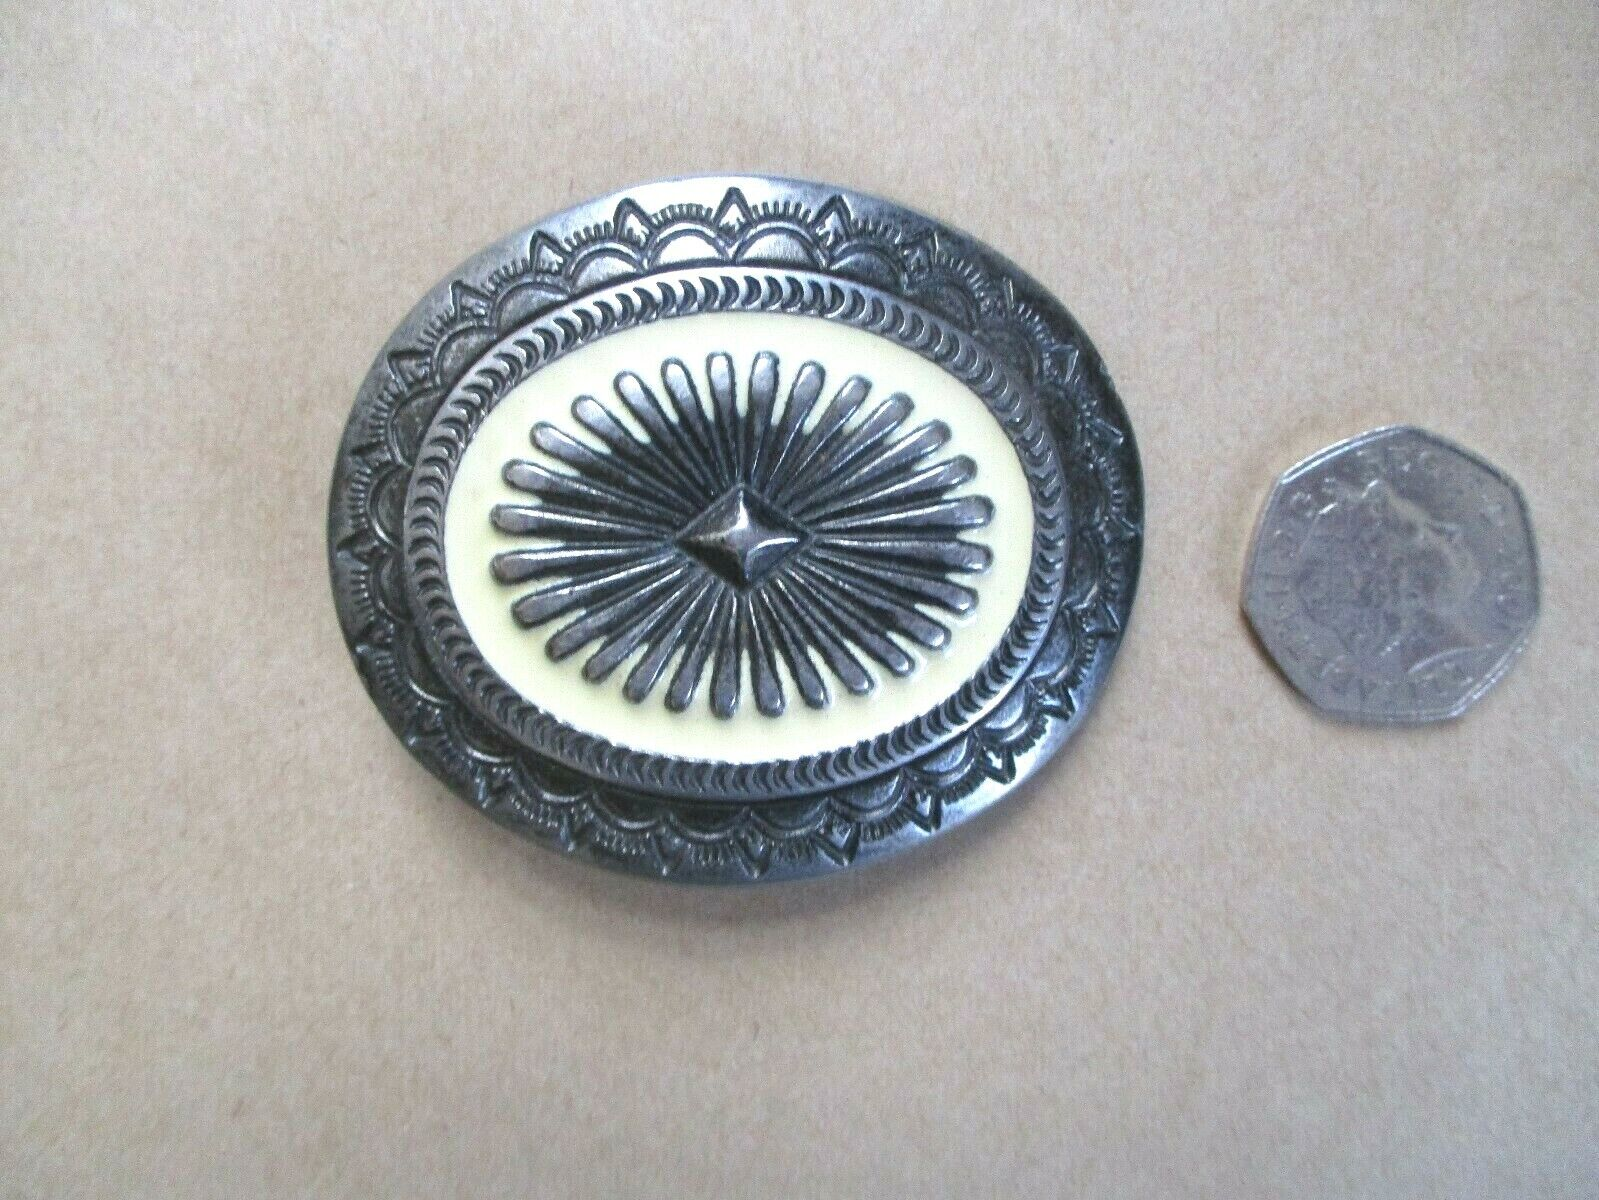 BEAUTIFULLY PATTERNED SMALL BELT BUCKLE PROBABLY FOR A FEMALE